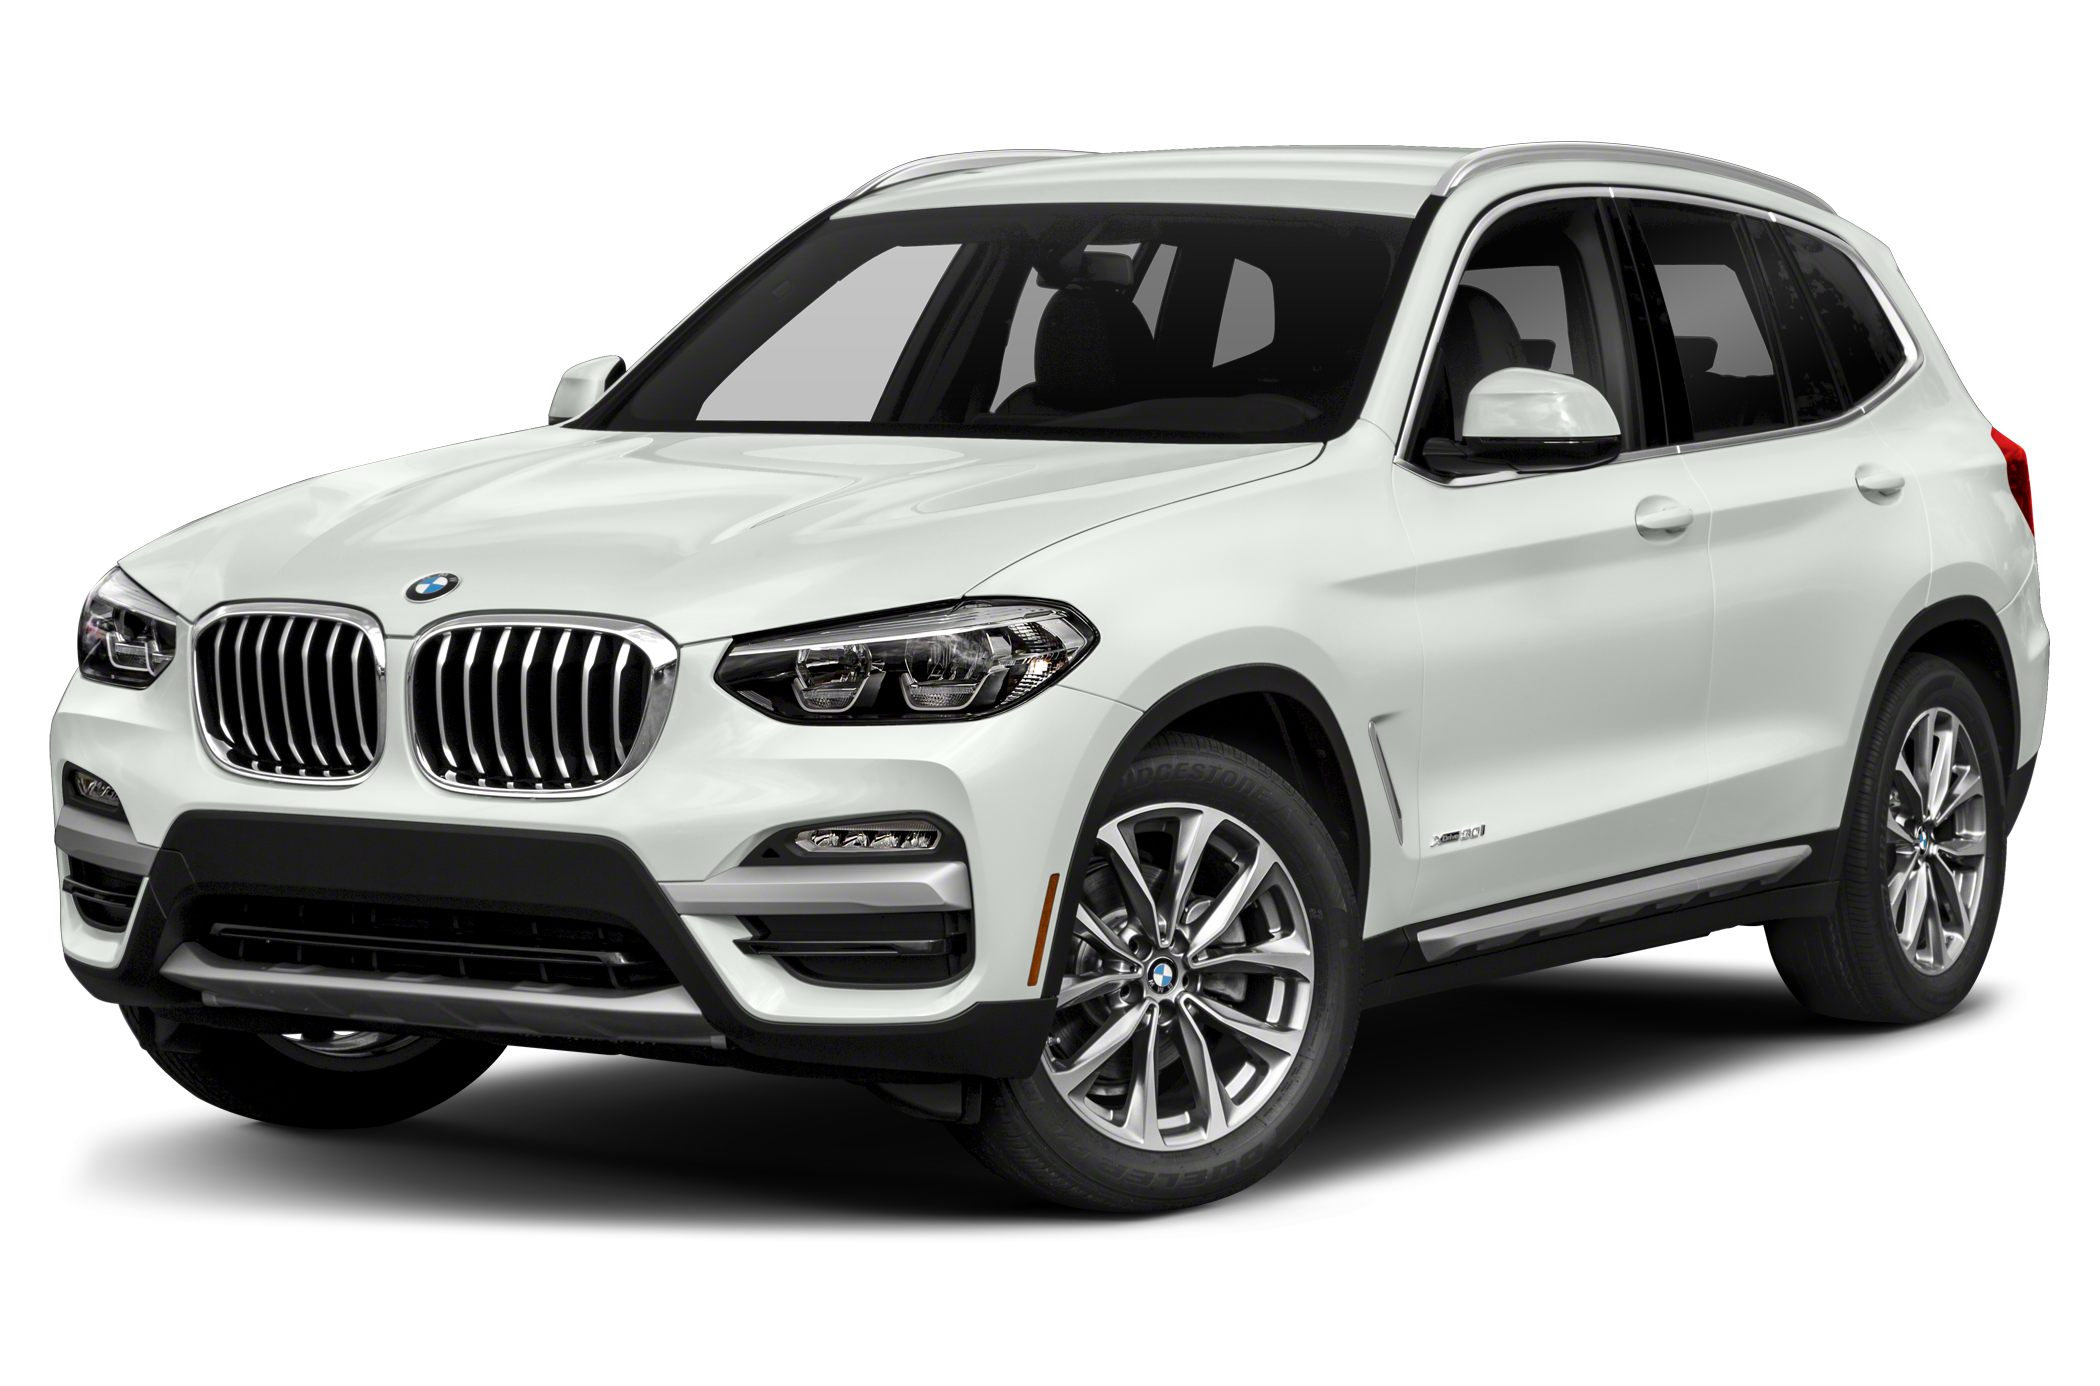 cars for sale near me bmw lovely used bmw suvs for sale under 5 000 miles and less than 5 000. Black Bedroom Furniture Sets. Home Design Ideas